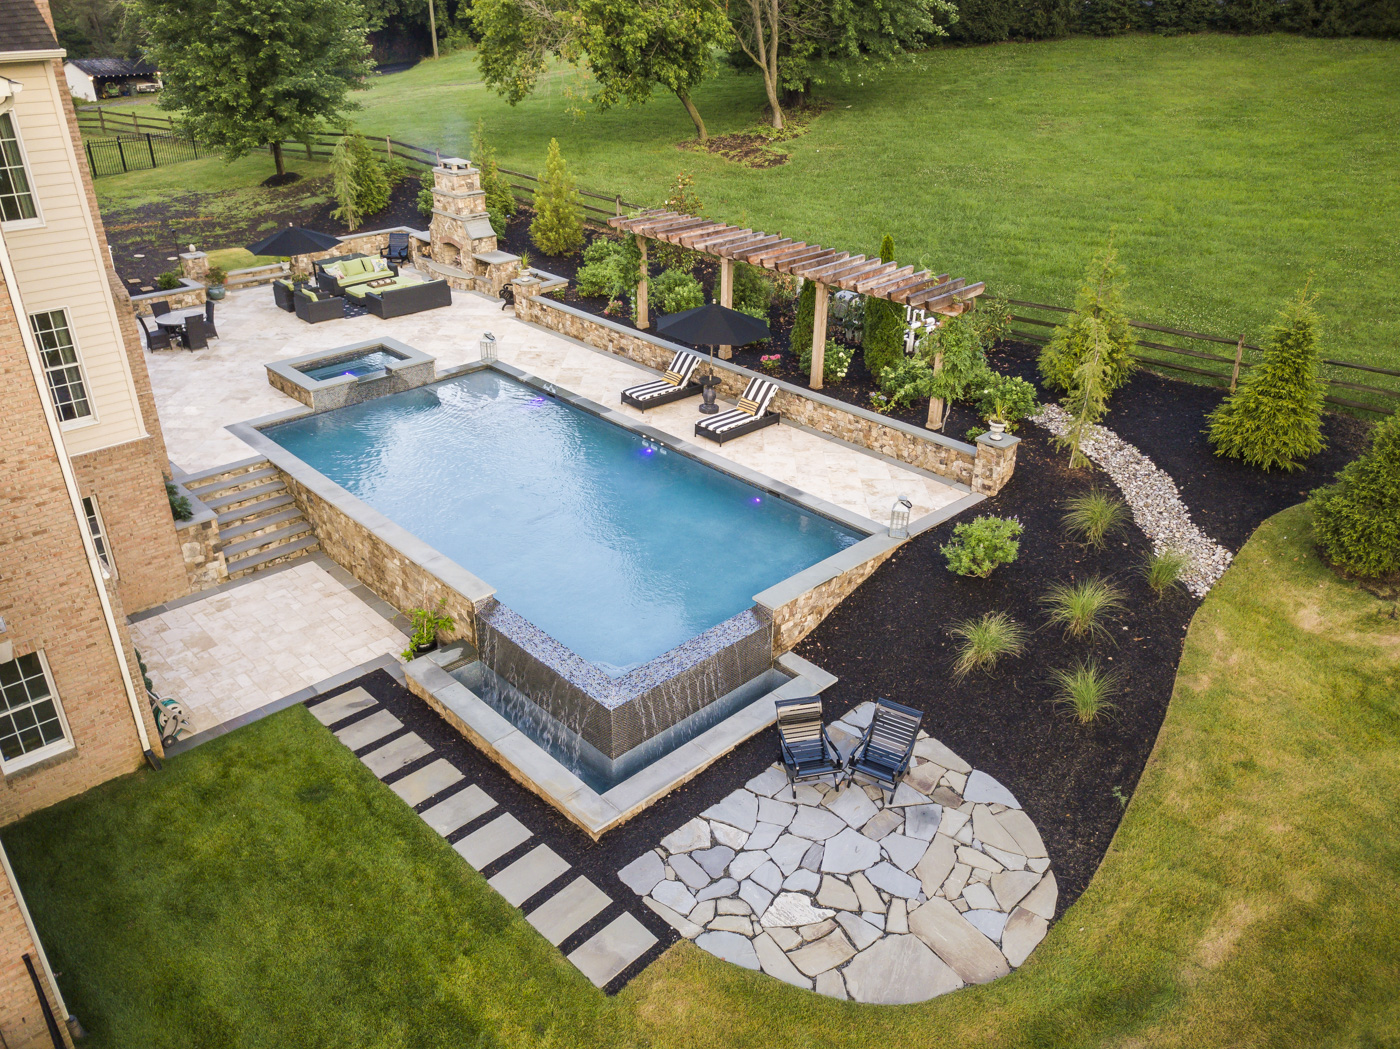 pool on a slope with multilevel patios